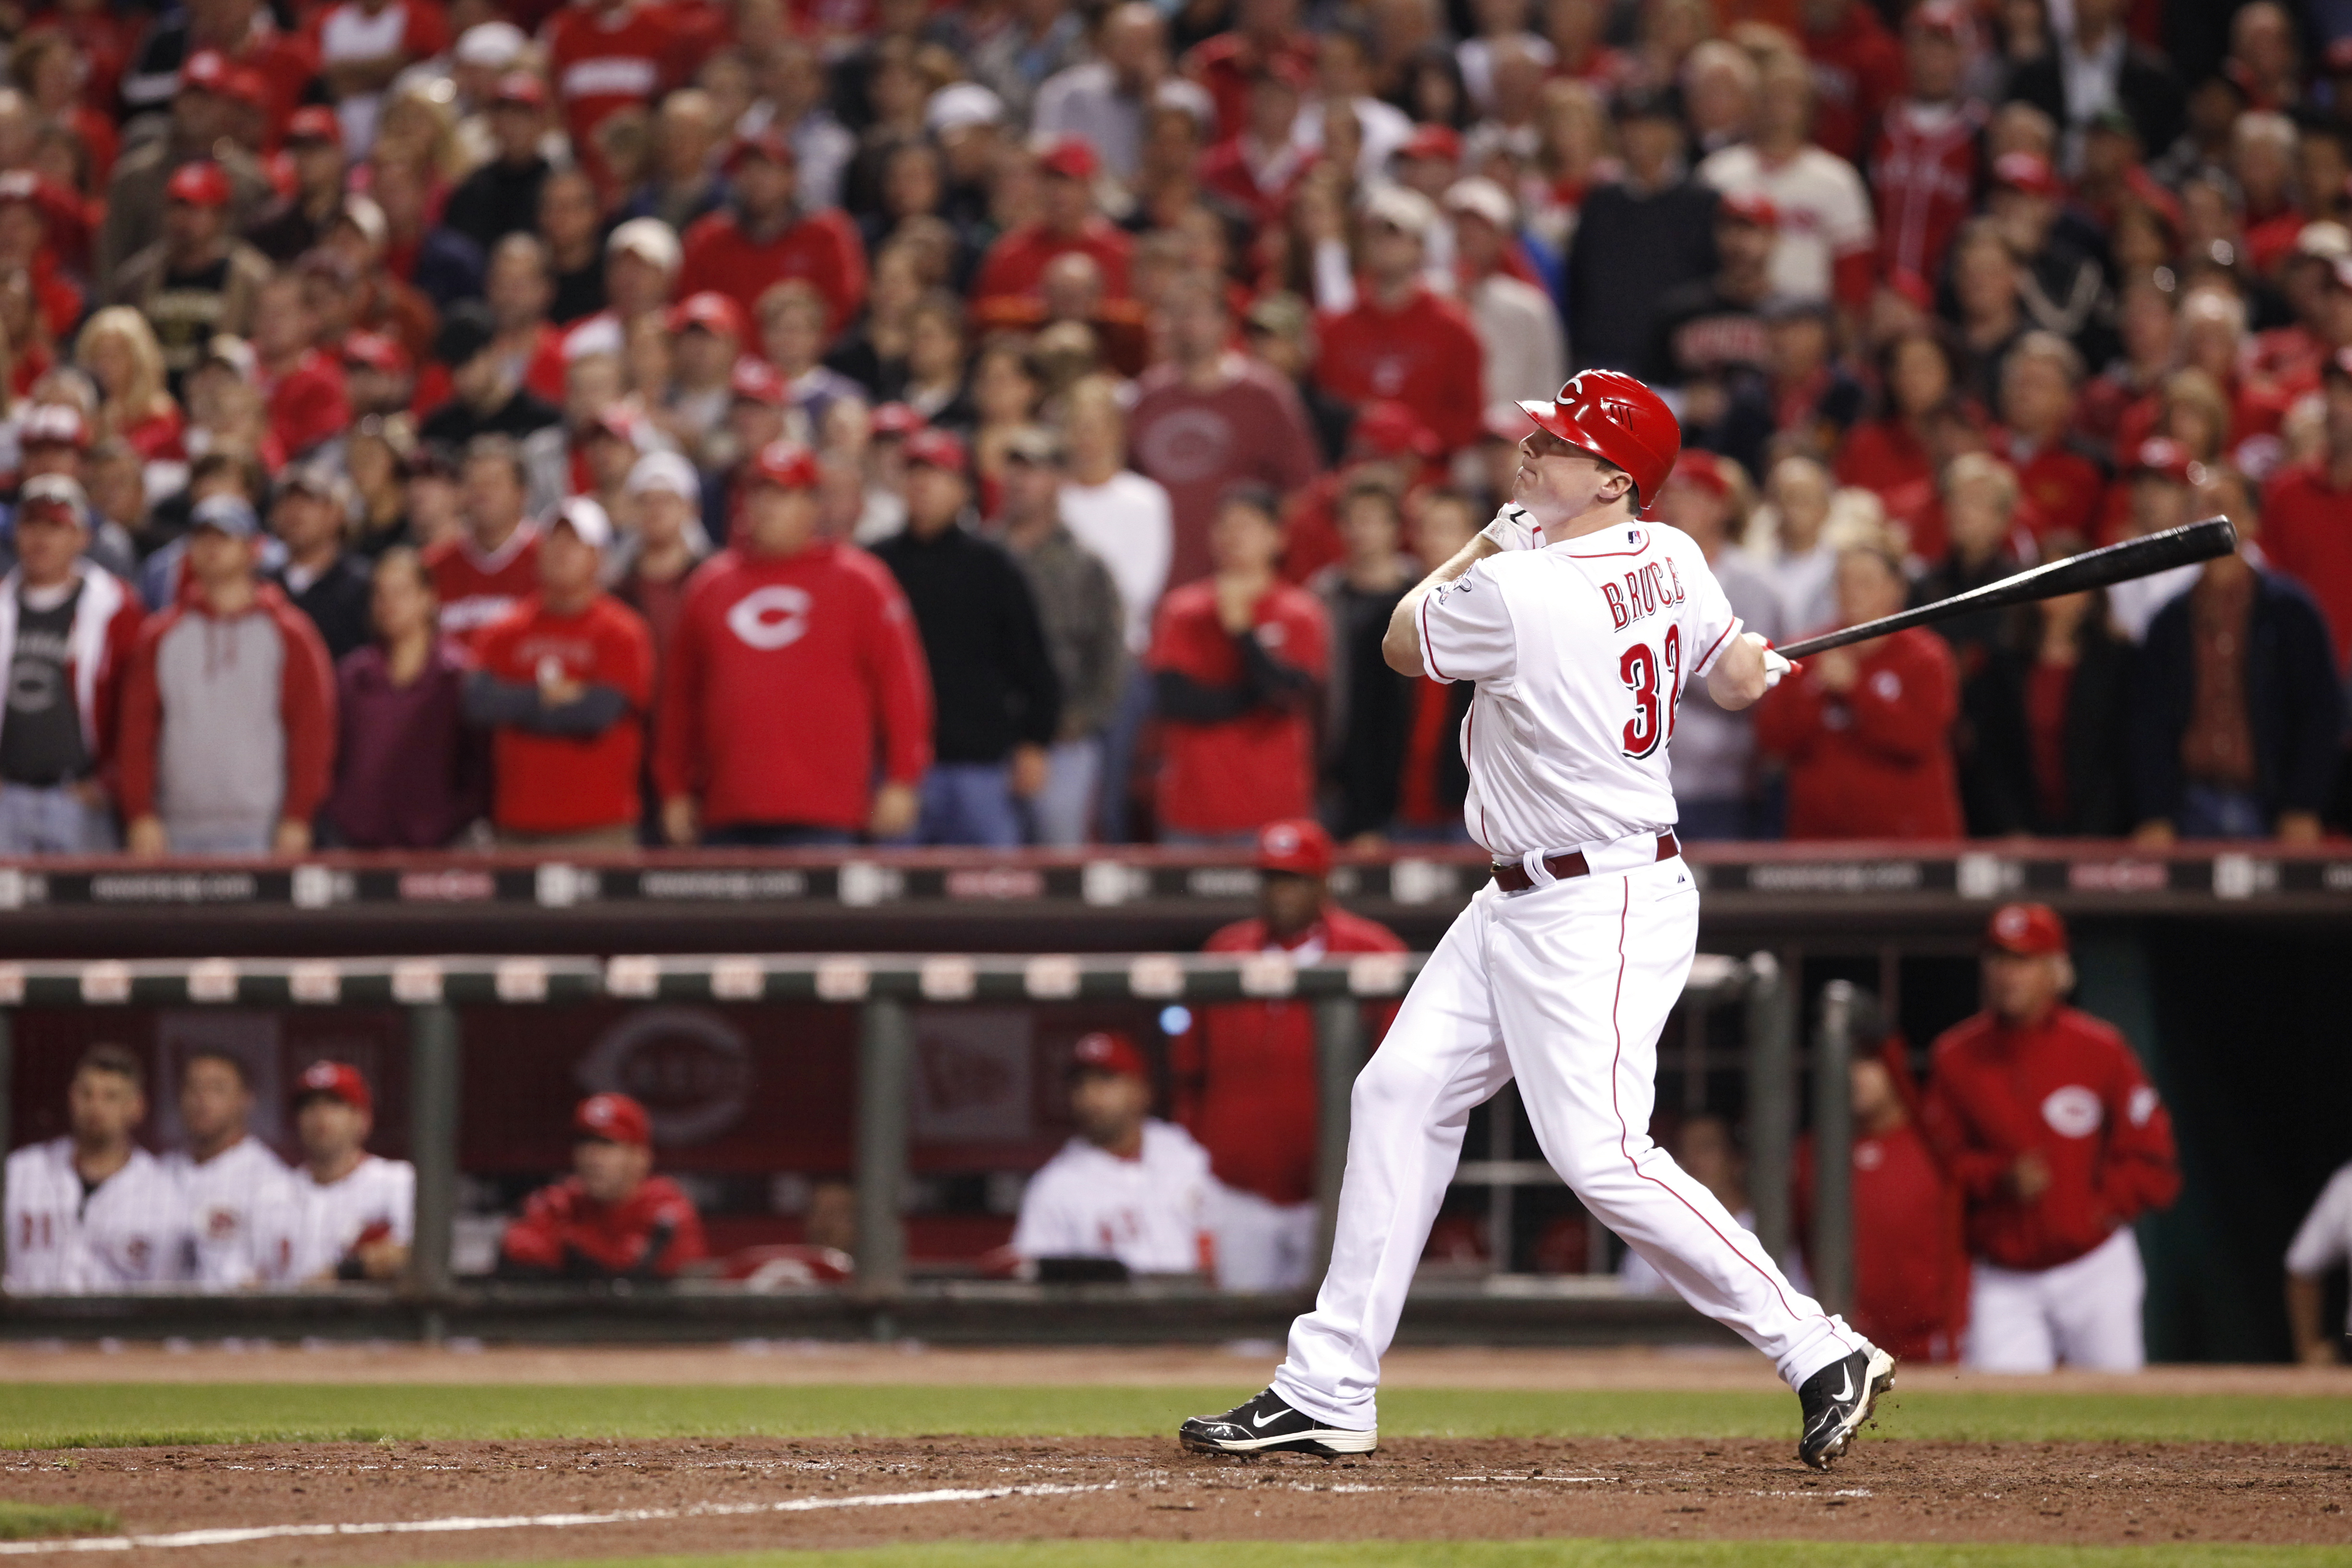 CINCINNATI, OH - SEPTEMBER 28: Jay Bruce #32 of the Cincinnati Reds watches his walk off home run in the ninth inning against the Houston Astros at Great American Ball Park on September 28, 2010 in Cincinnati, Ohio. The Reds won 3-2 to clinch the NL Centr